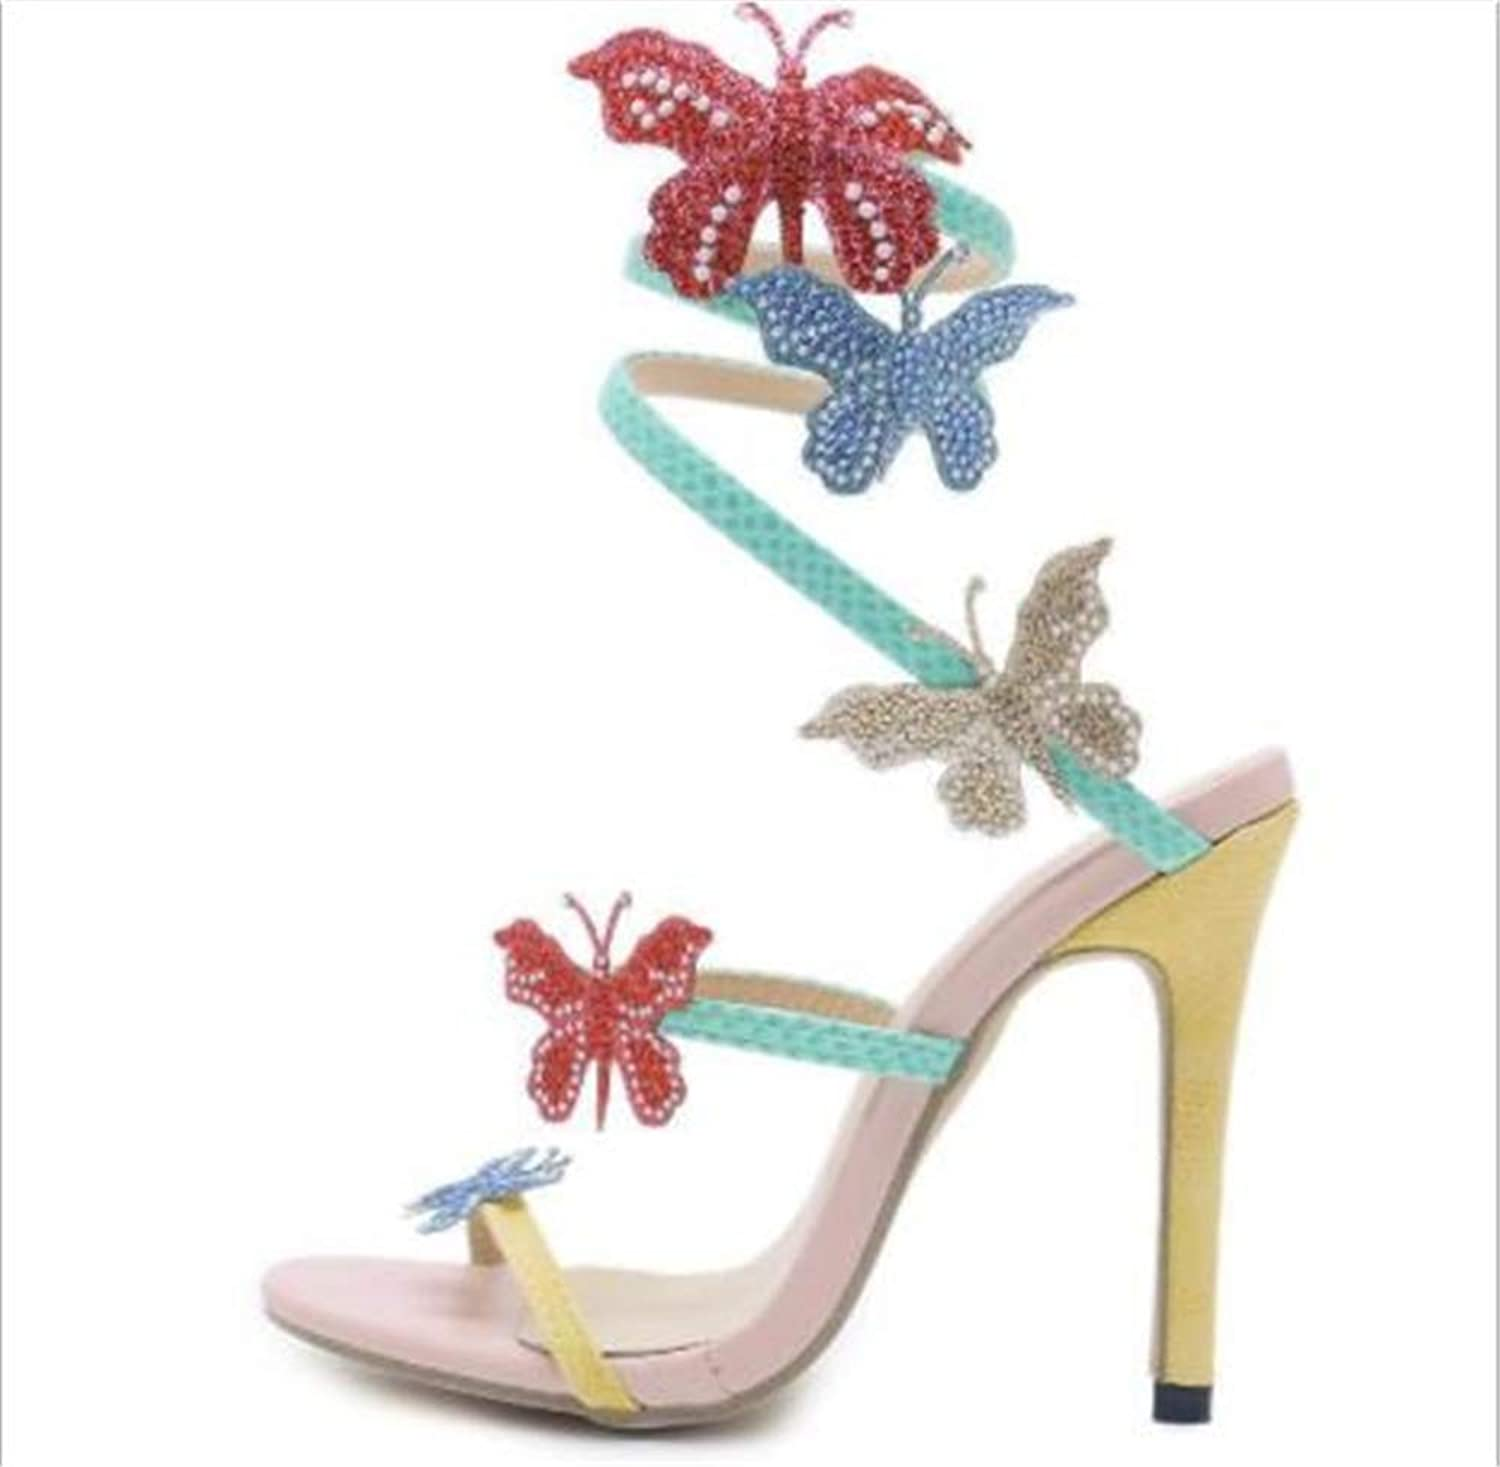 COLOV Women's Unique high Heel Sandals Open Toe Stiletto Sandals with Butterfly